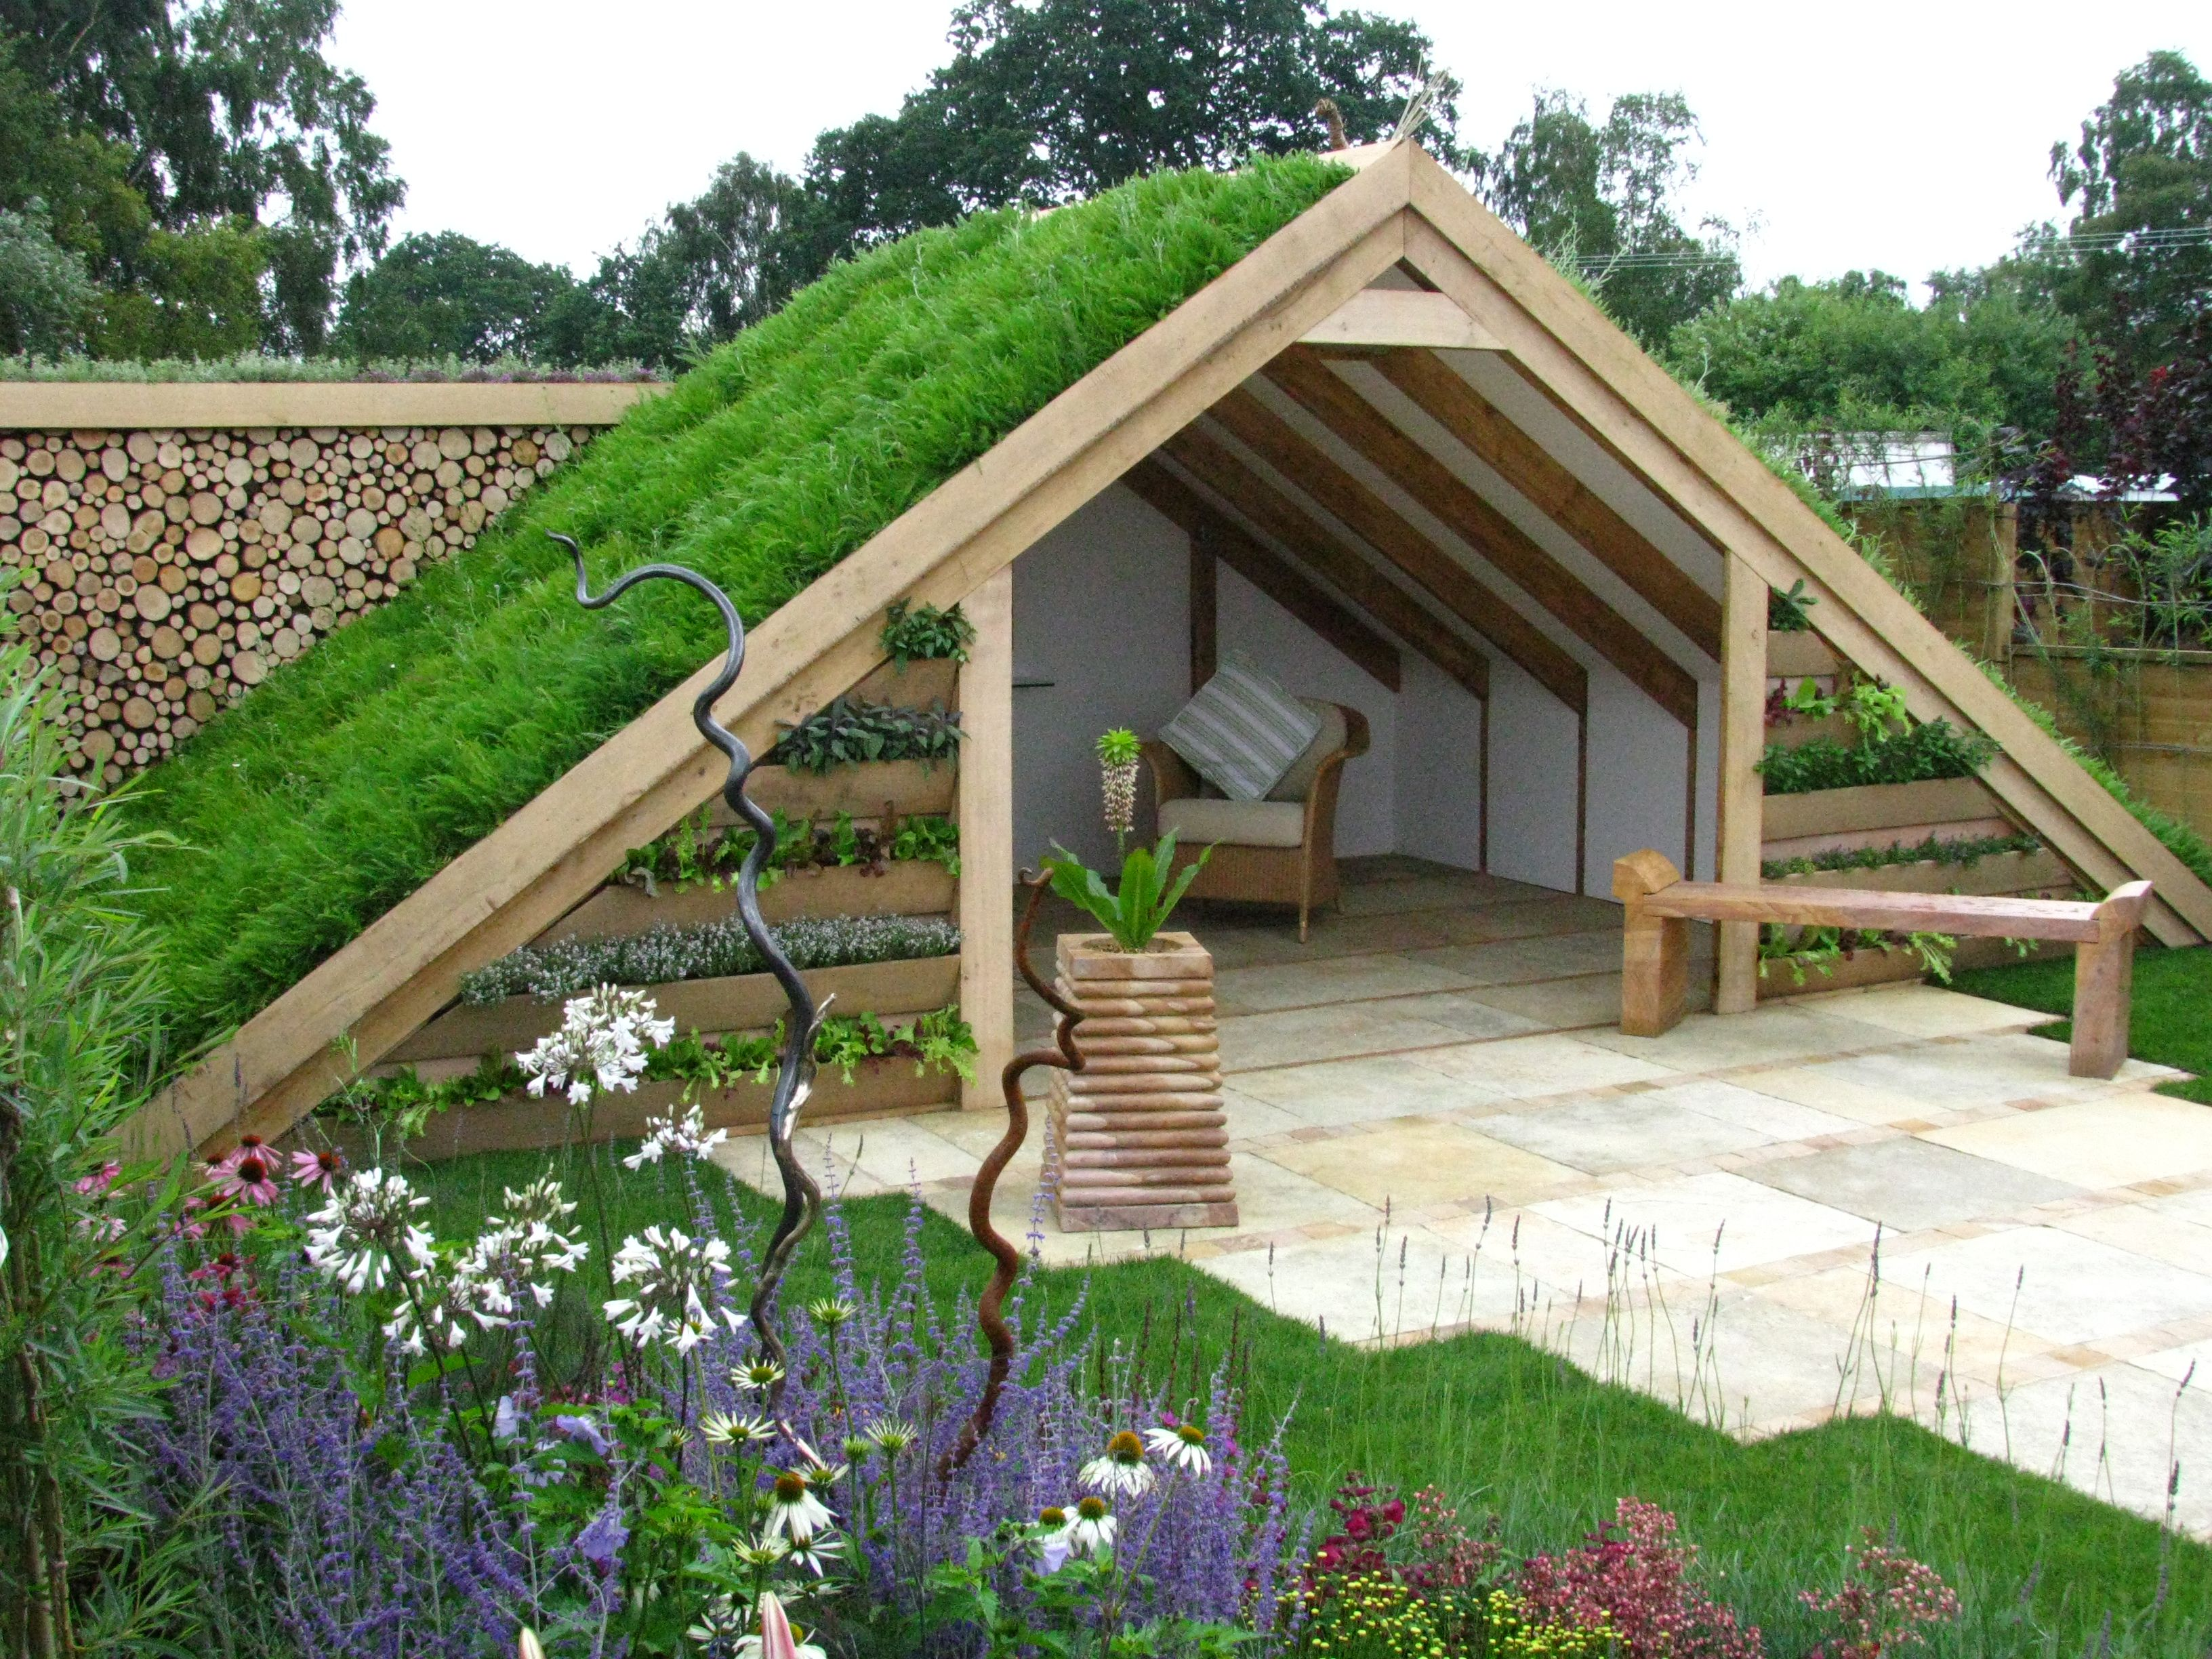 Ideas On Garden Designs 40 small garden ideas small garden designs Garden Design Ideas 50 Modern Garden Design Ideas To Try In 2017 Green Roof Shed At